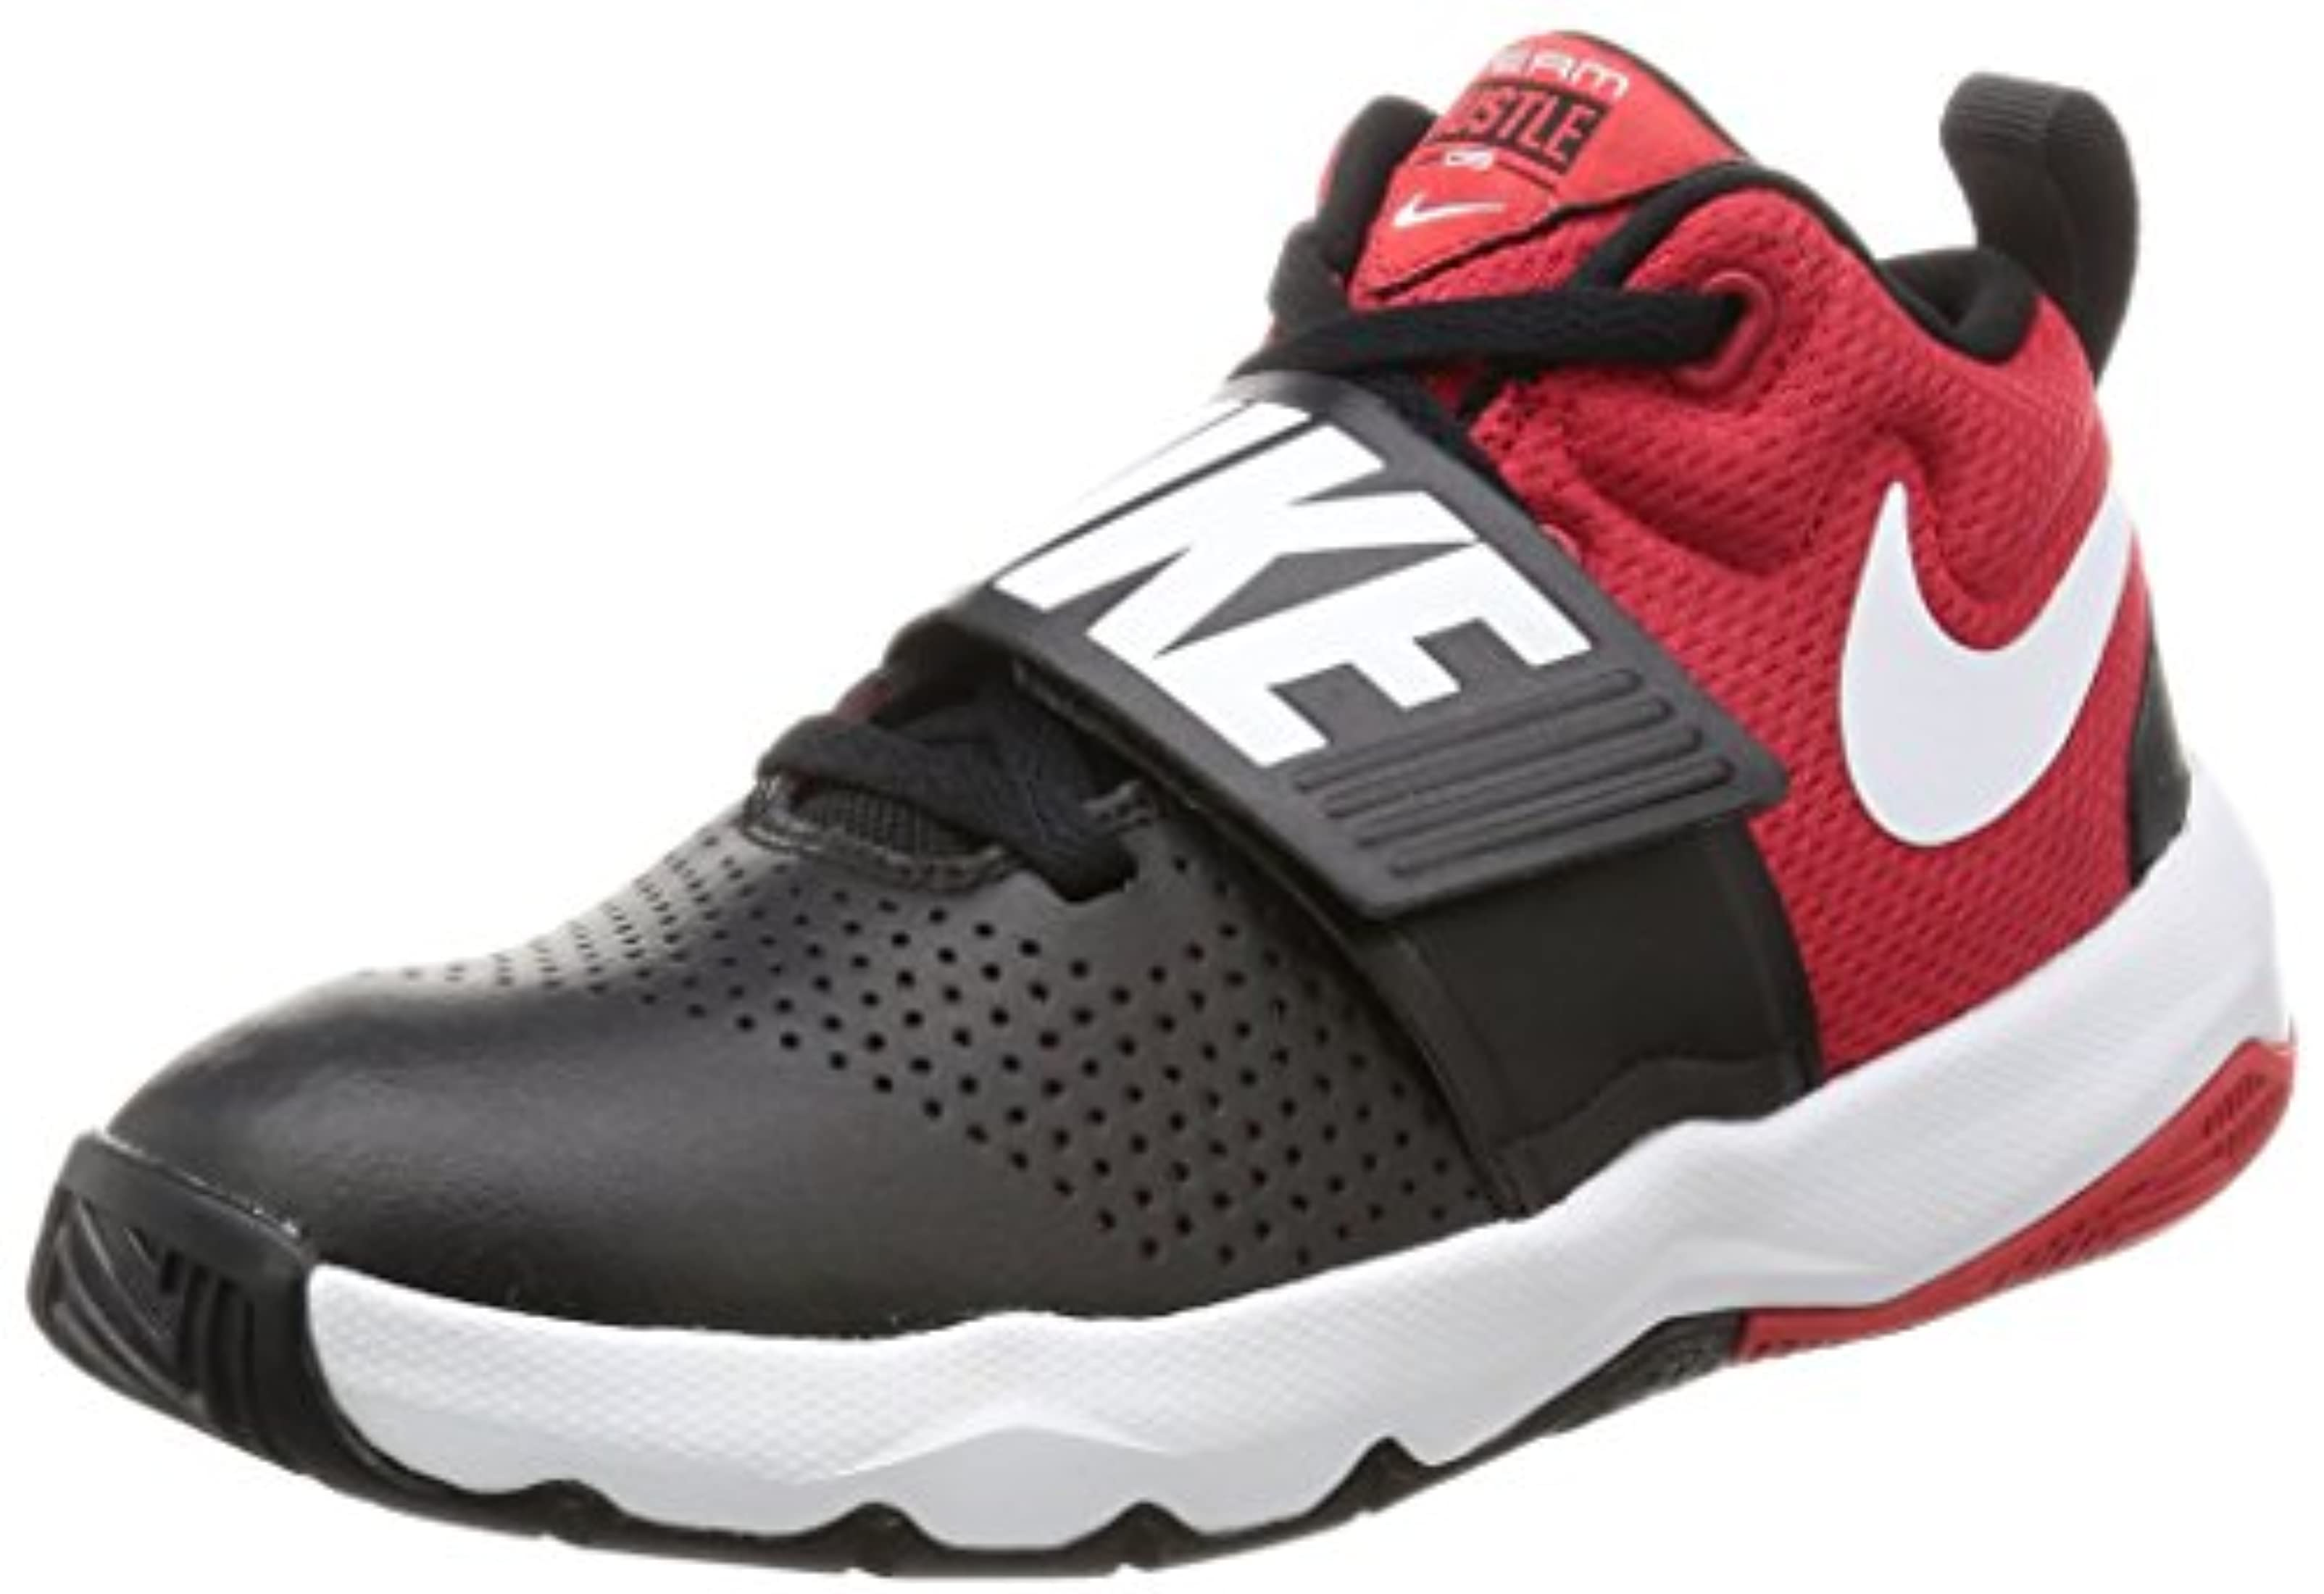 ac1d5e1bfec Nike Team Hustle D 8 (GS) Sneaker Black White - University red 4.5Y ...